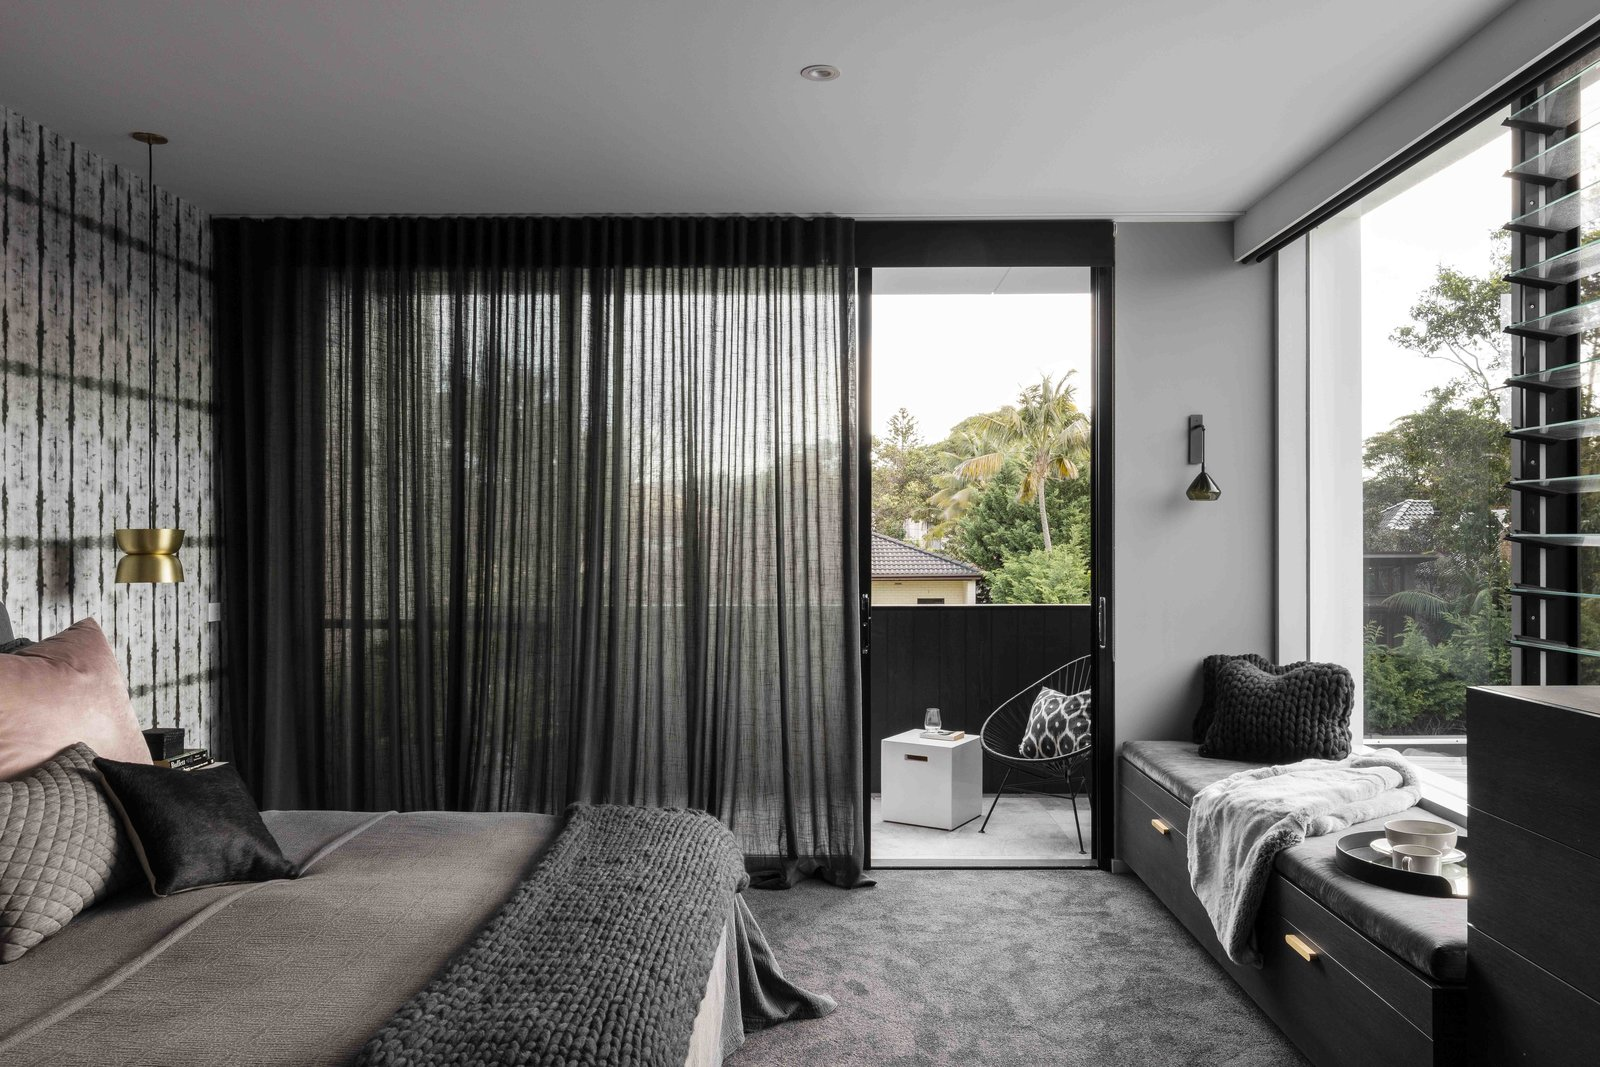 Tagged: Bedroom, Bed, Pendant Lighting, Bench, Storage, Chair, and Carpet Floor.  The Rose Bay House by Prebuilt